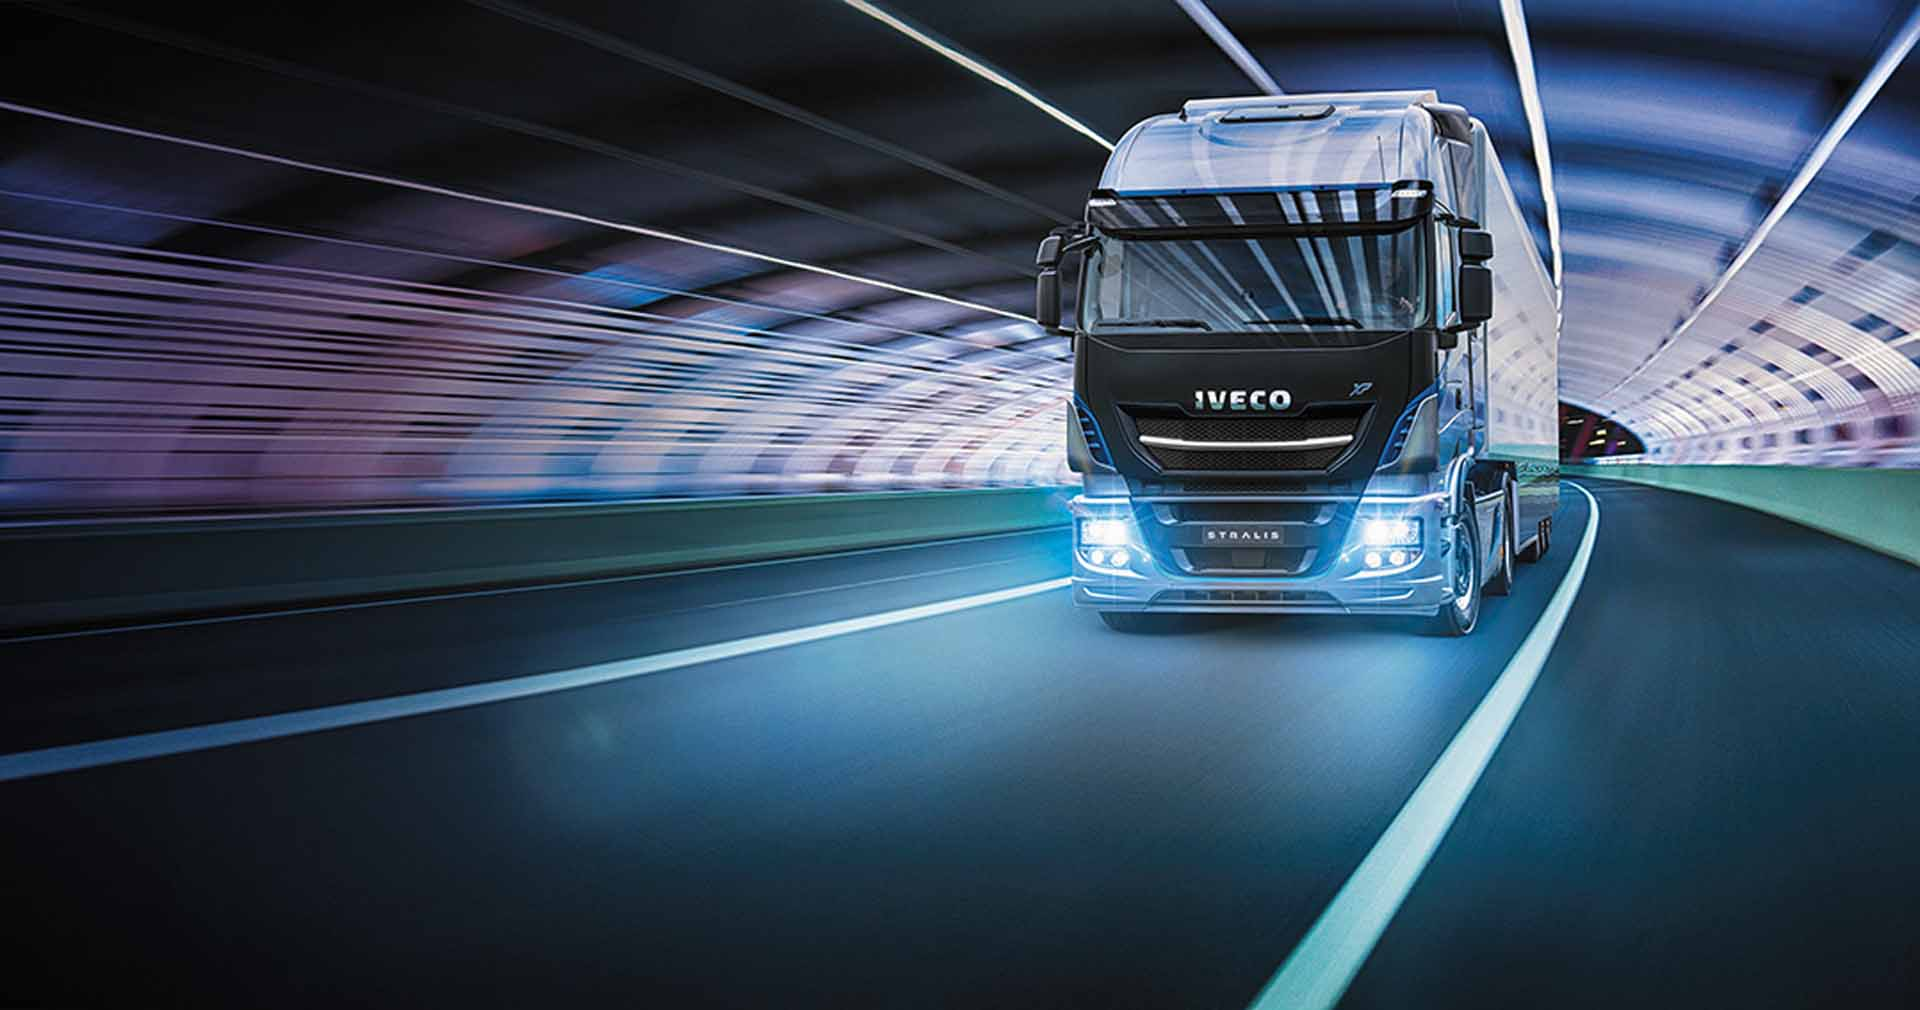 iveco-new-stralis-xp-tunnel_27818427296_o